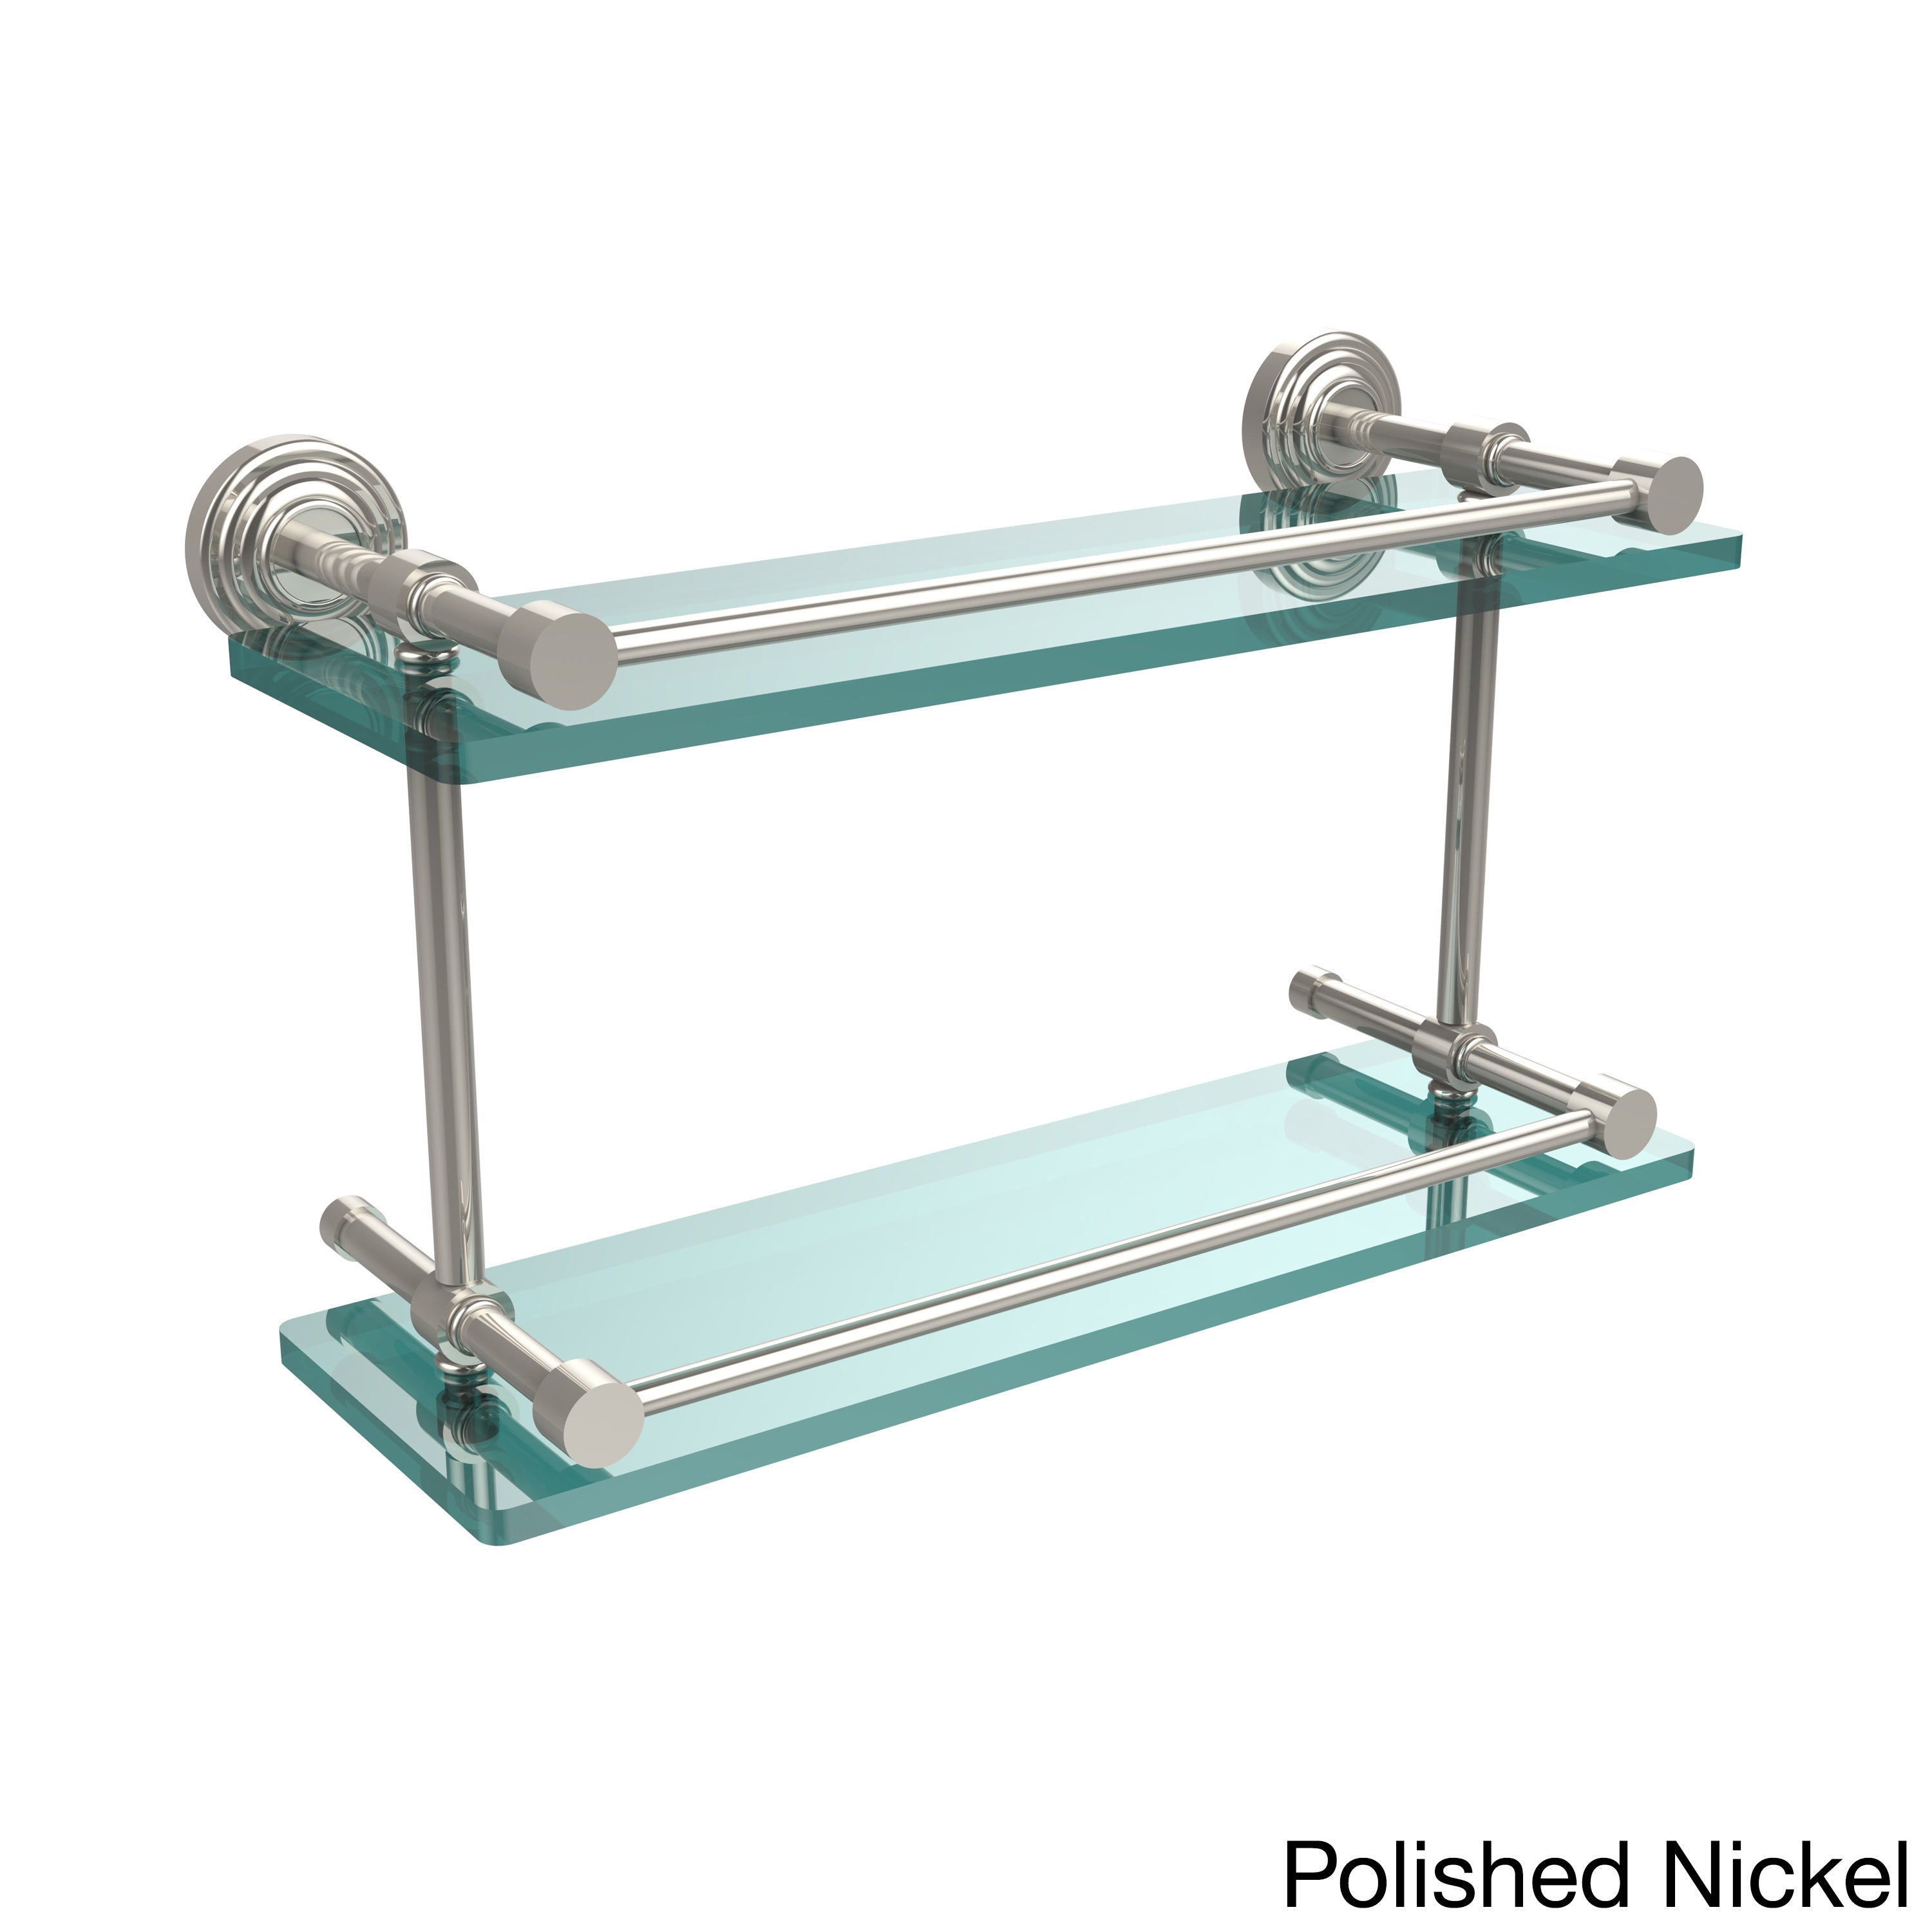 Waverly Place 16-inch Double Glass Shelf with Gallery Rail | eBay